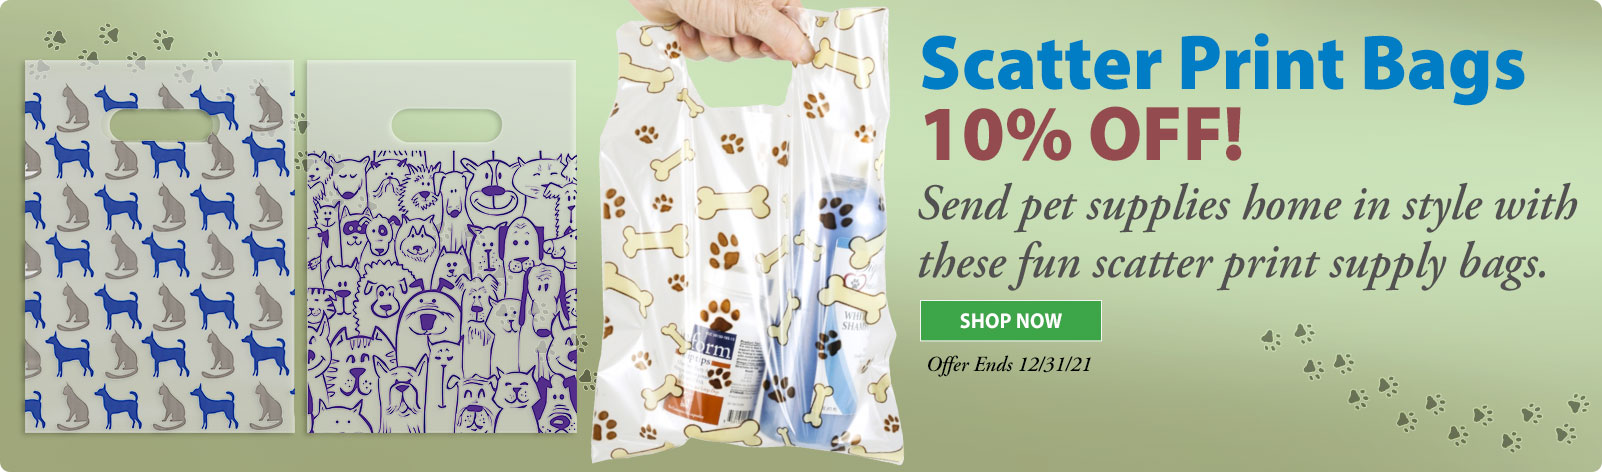 Save 20% on Scatter Print Bags!